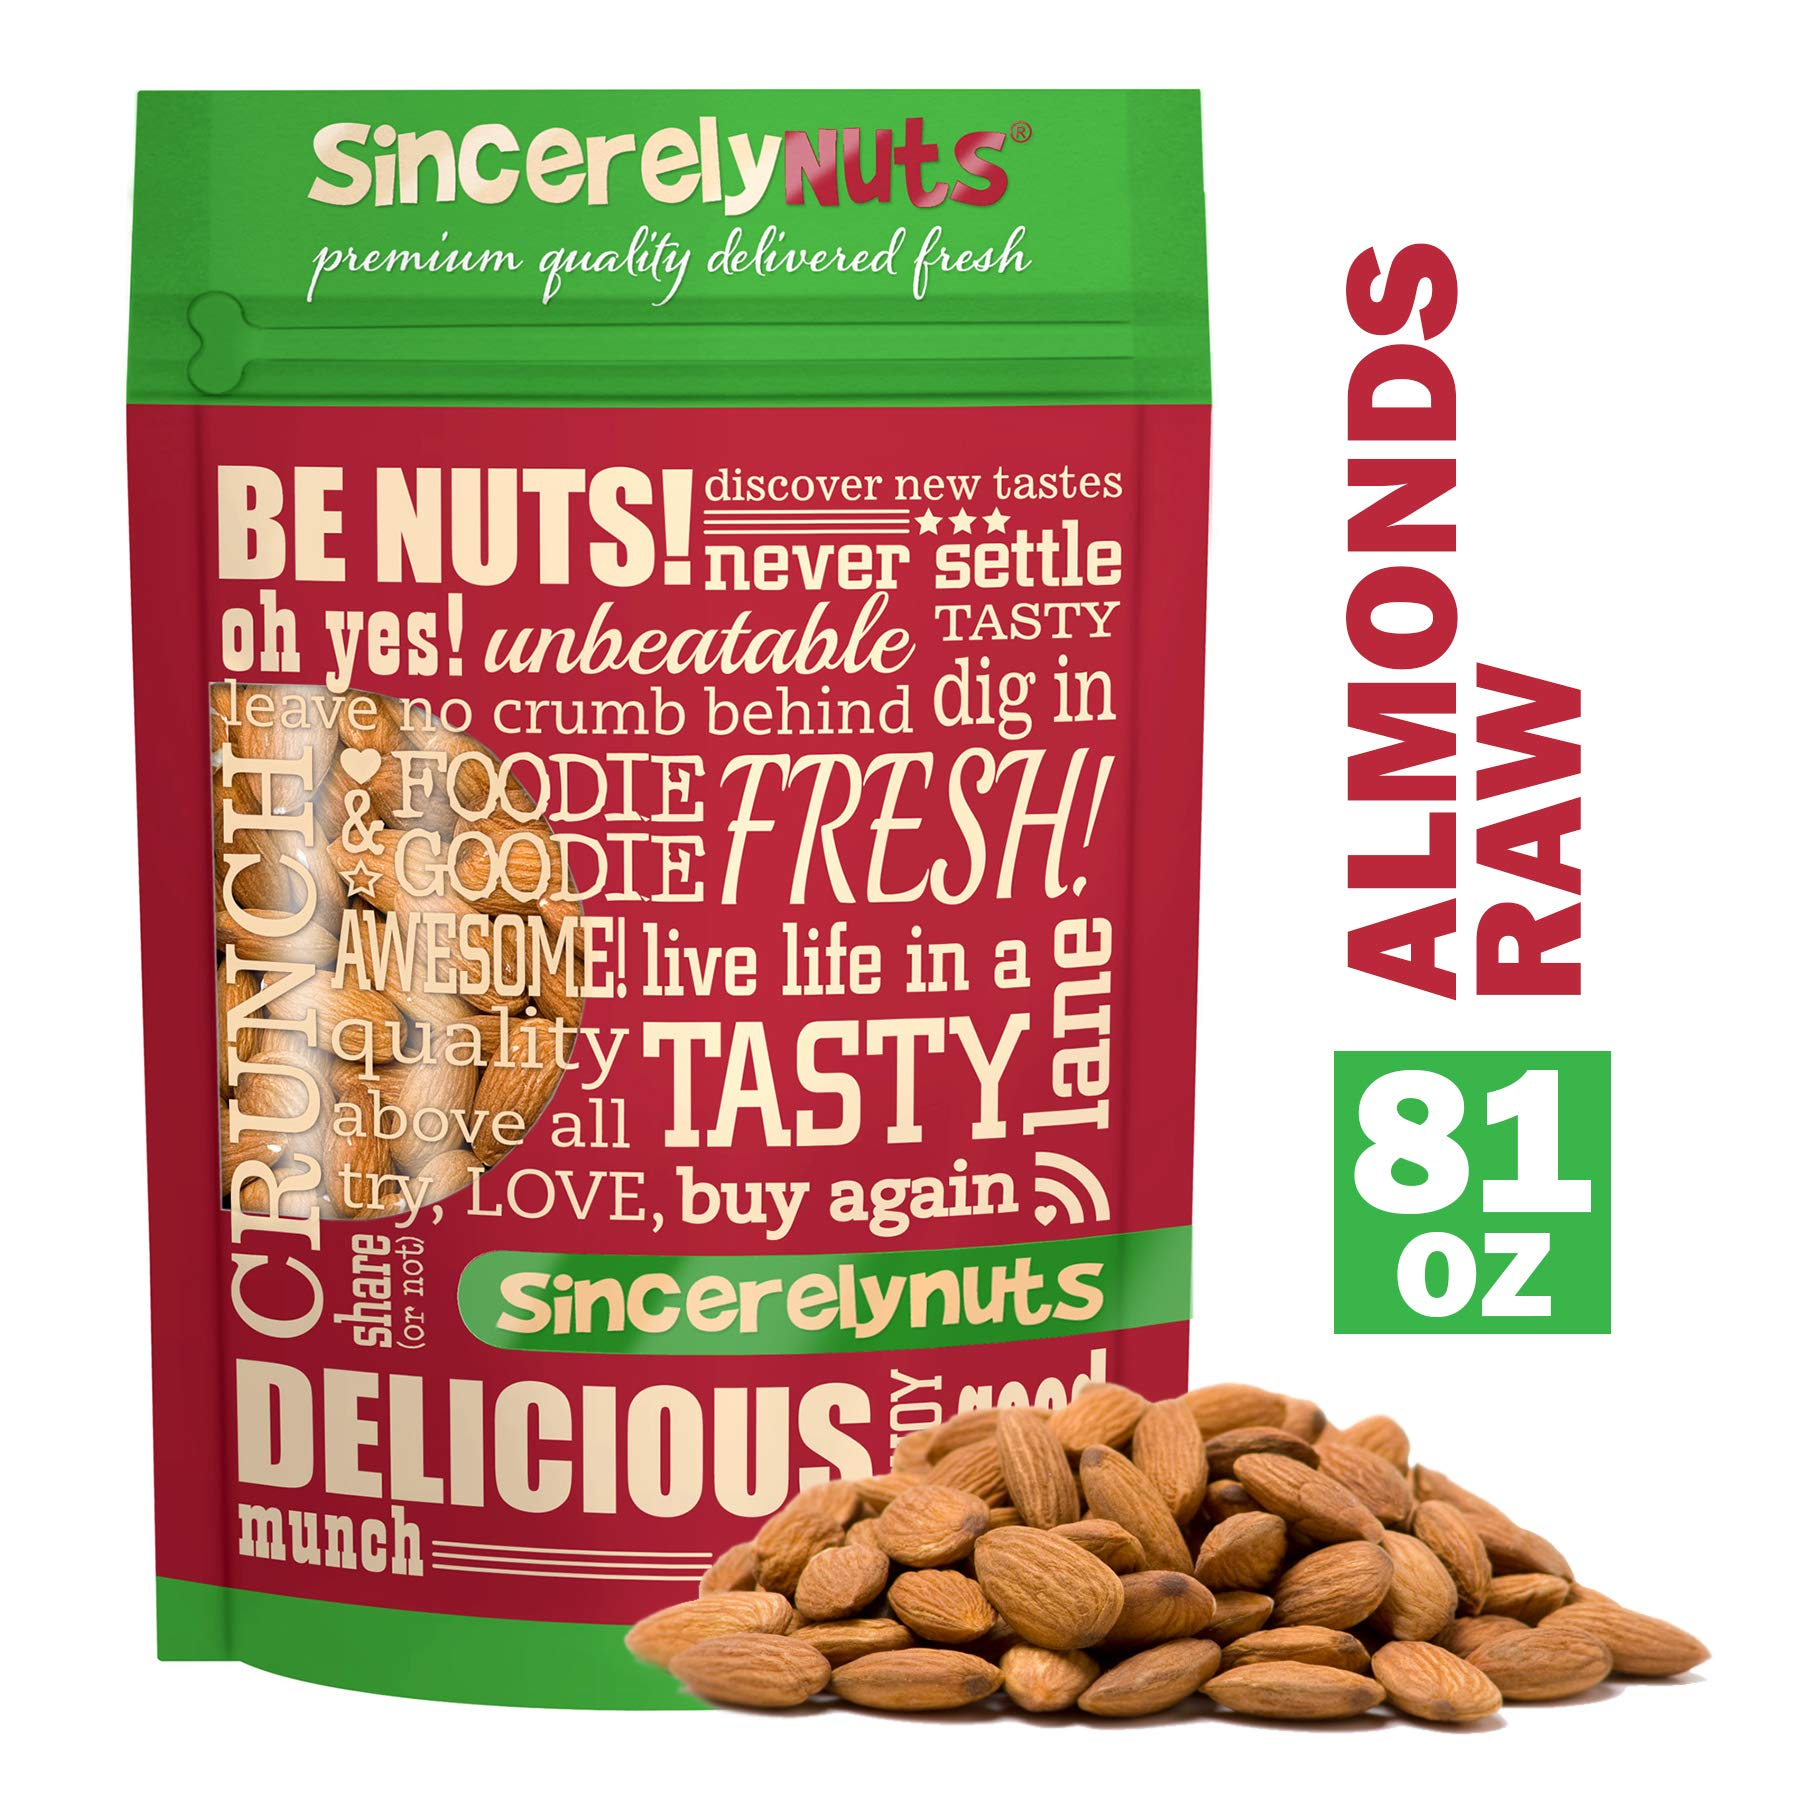 Sincerely Nuts - Natural Whole Raw Almonds Unsalted No Shell | 5 Lb. Bag | Low Calorie, Low Sodium, Kosher, Vegan, Gluten Free | Gourmet Kosher Snack Food | Source of Fiber, Protein, Nutrients